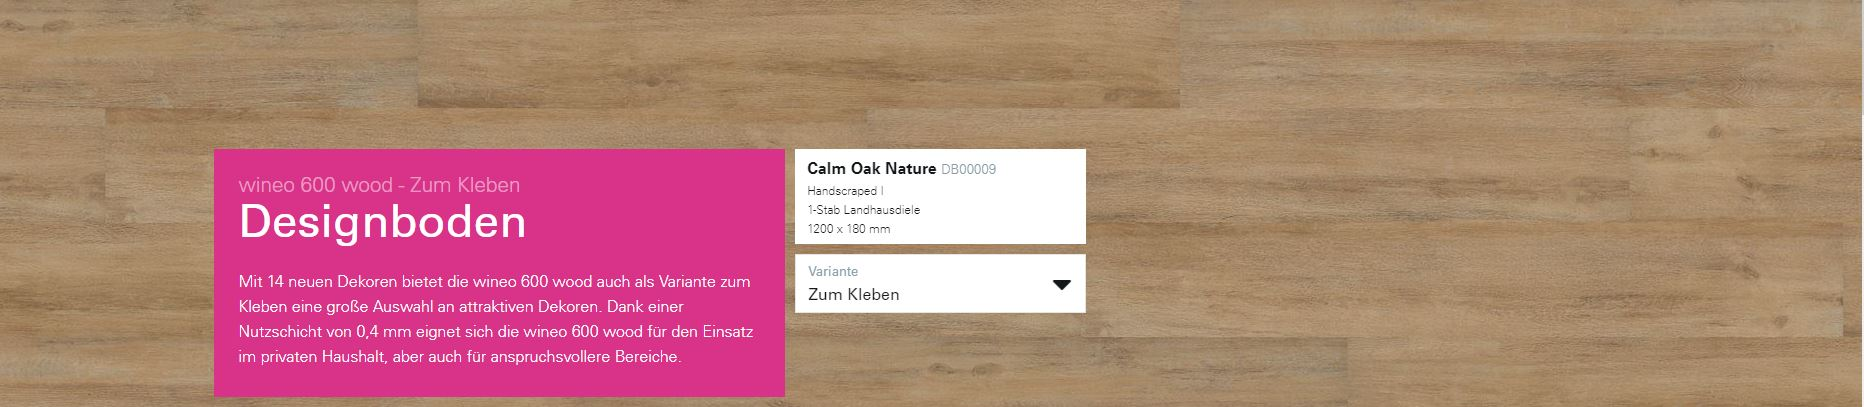 Wineo 600 Calm Oak Nature DB0009 @ Boden4You.com Design Bodenbelag günstig und Trsuted Shop sicher kaufen